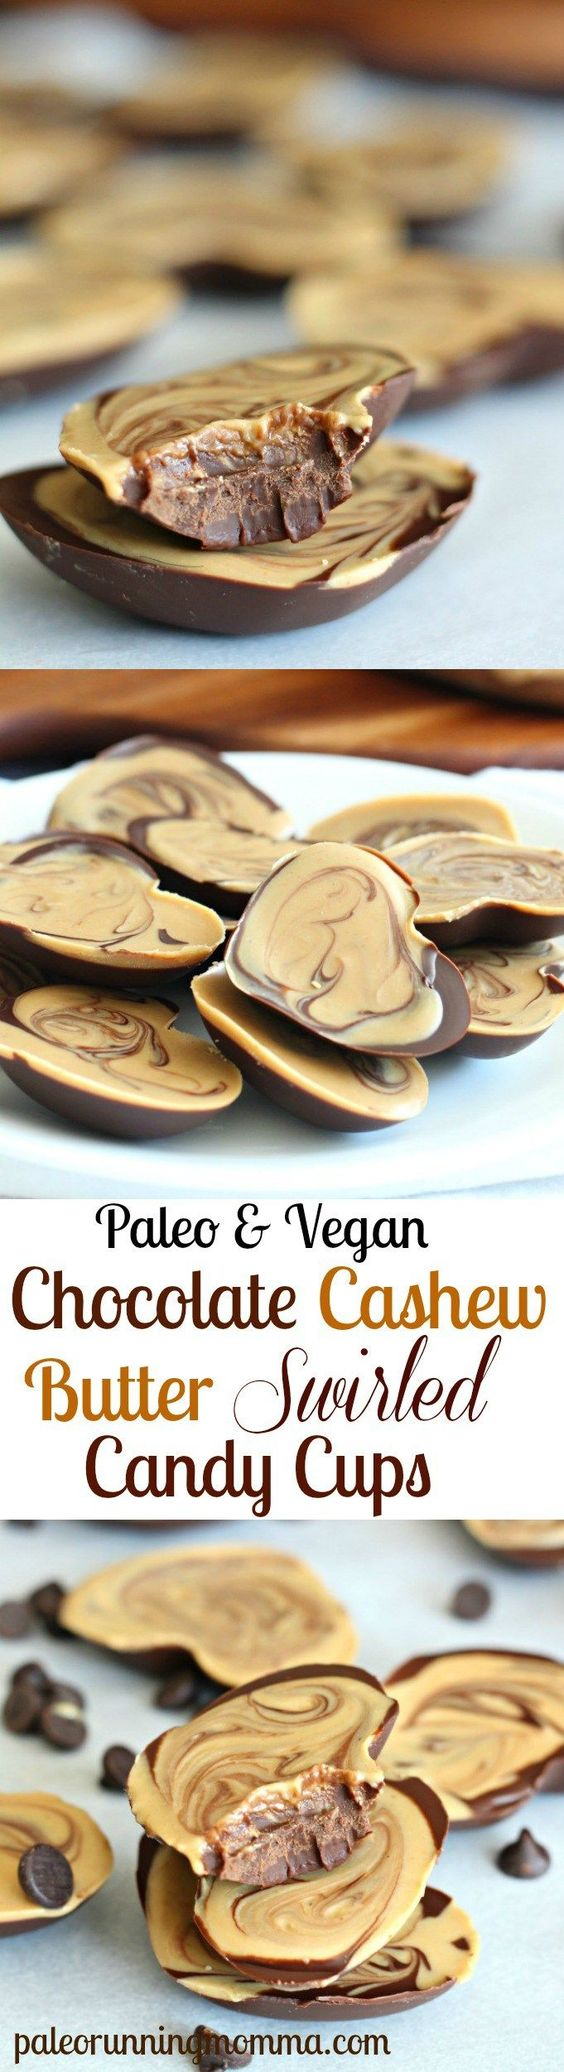 chocolate-cashew-butter-swirled-candy-cups-paleo-vegan